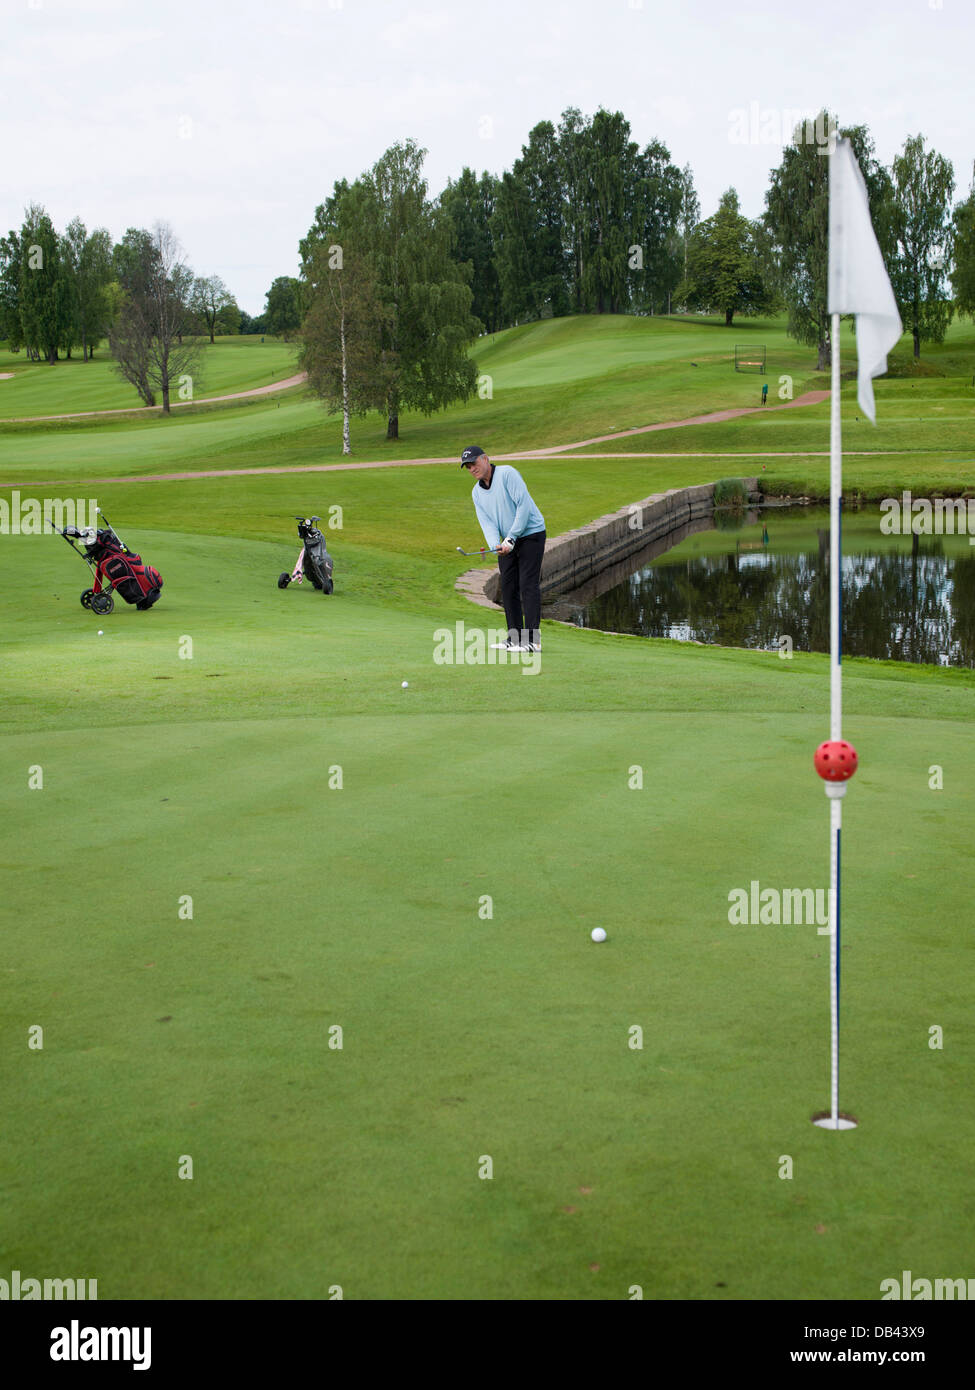 Senior citizen playing golf, dressed in black and blue, on the fairway - Stock Image